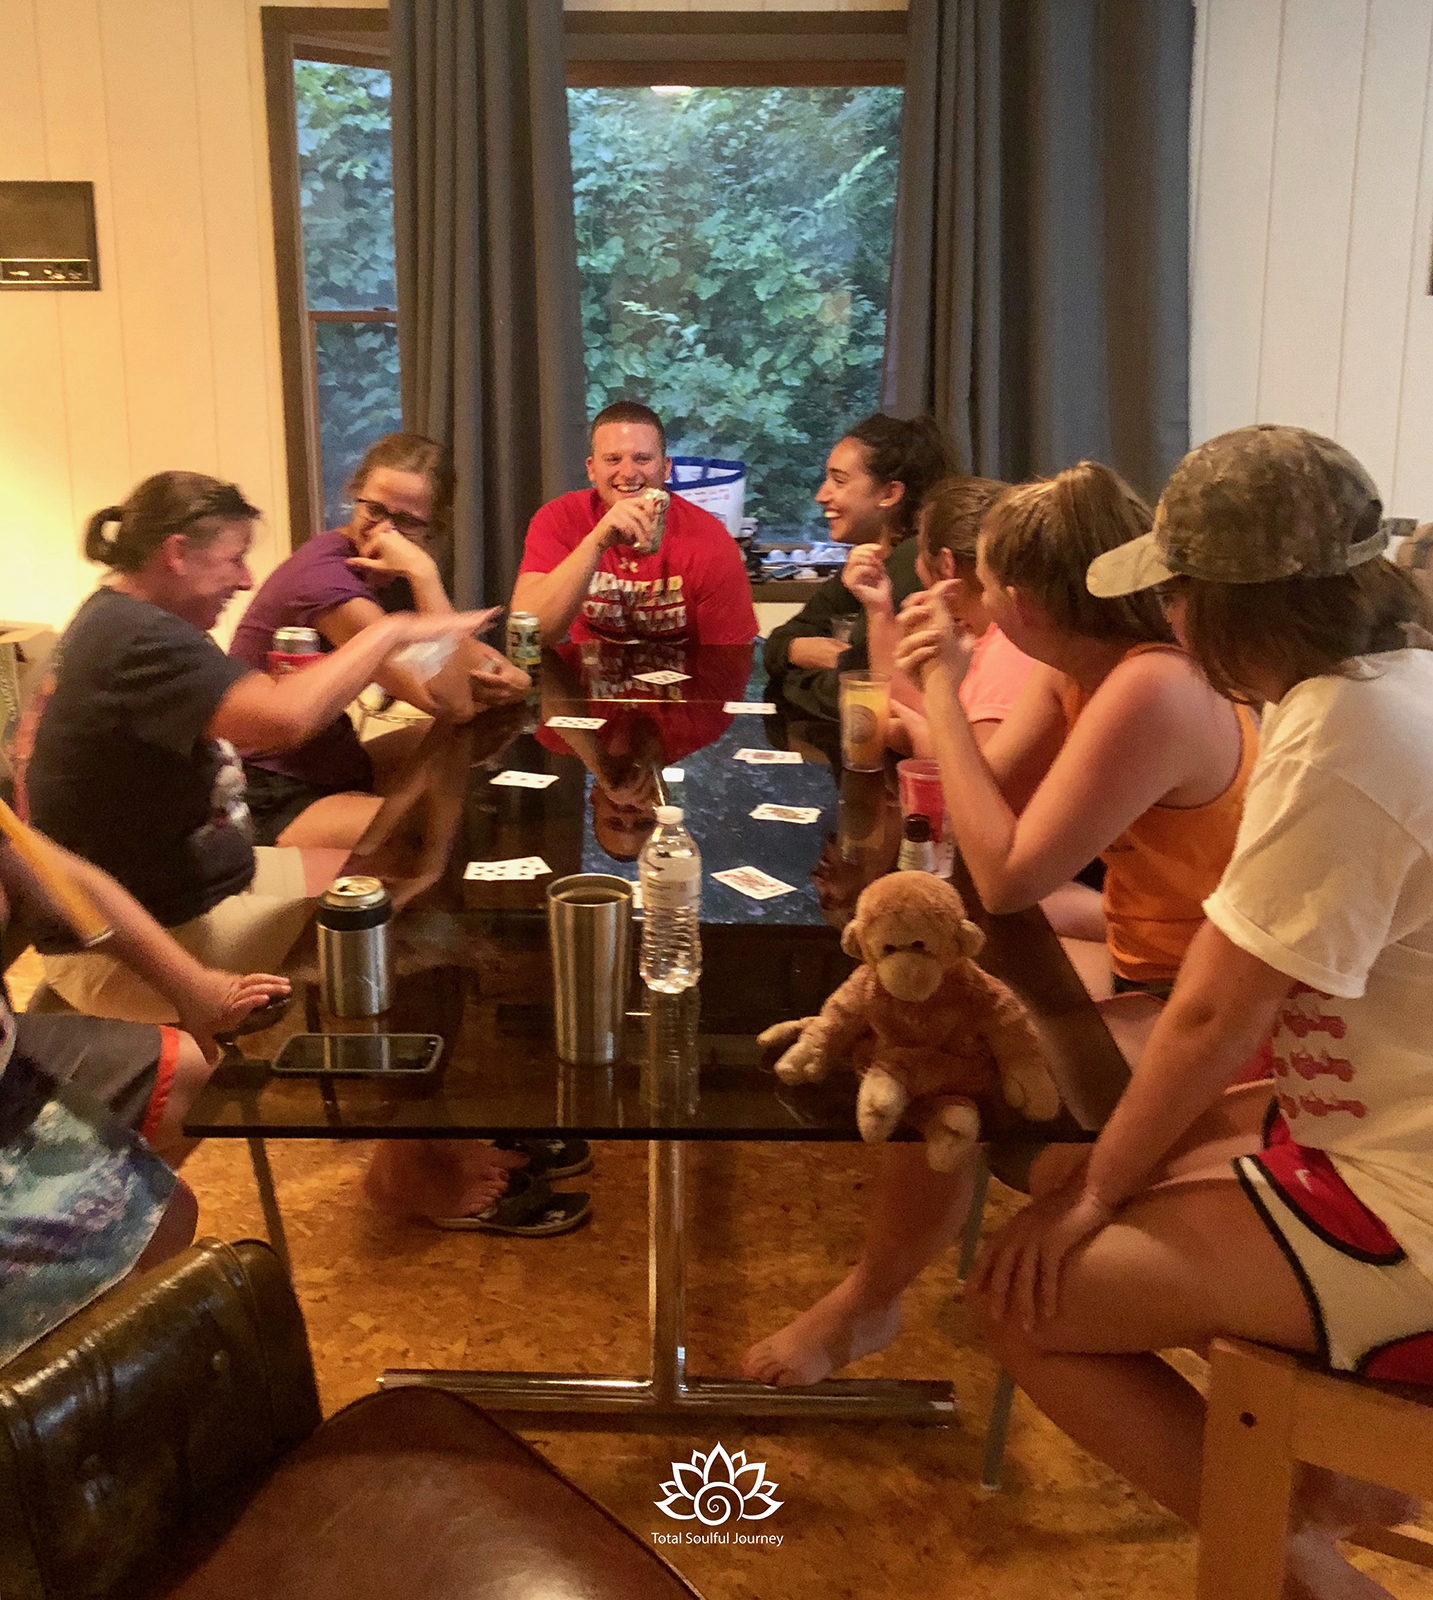 There's nothing -  like a fun game of cards after a long day on the lake with great friends. Laughter is good medicine!